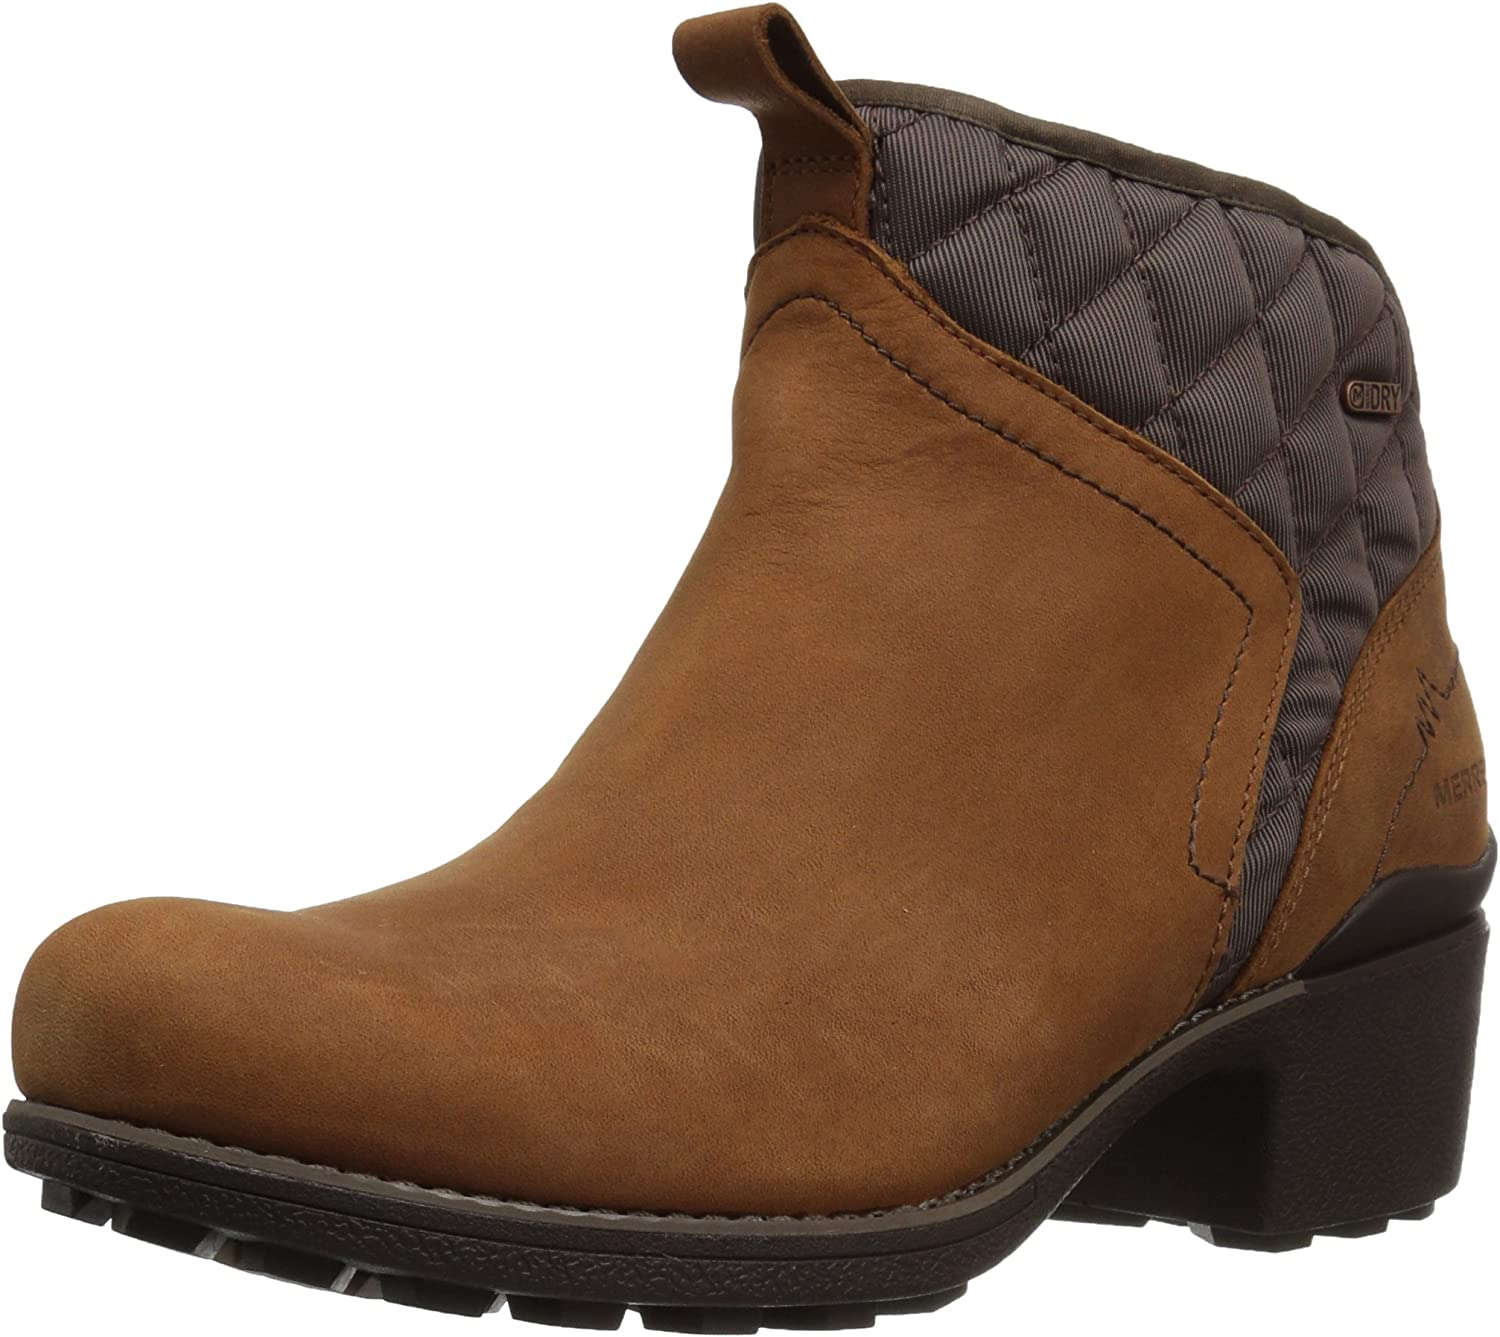 Merrell Womens Chateau Mid Pull WTPF Ankle Boot